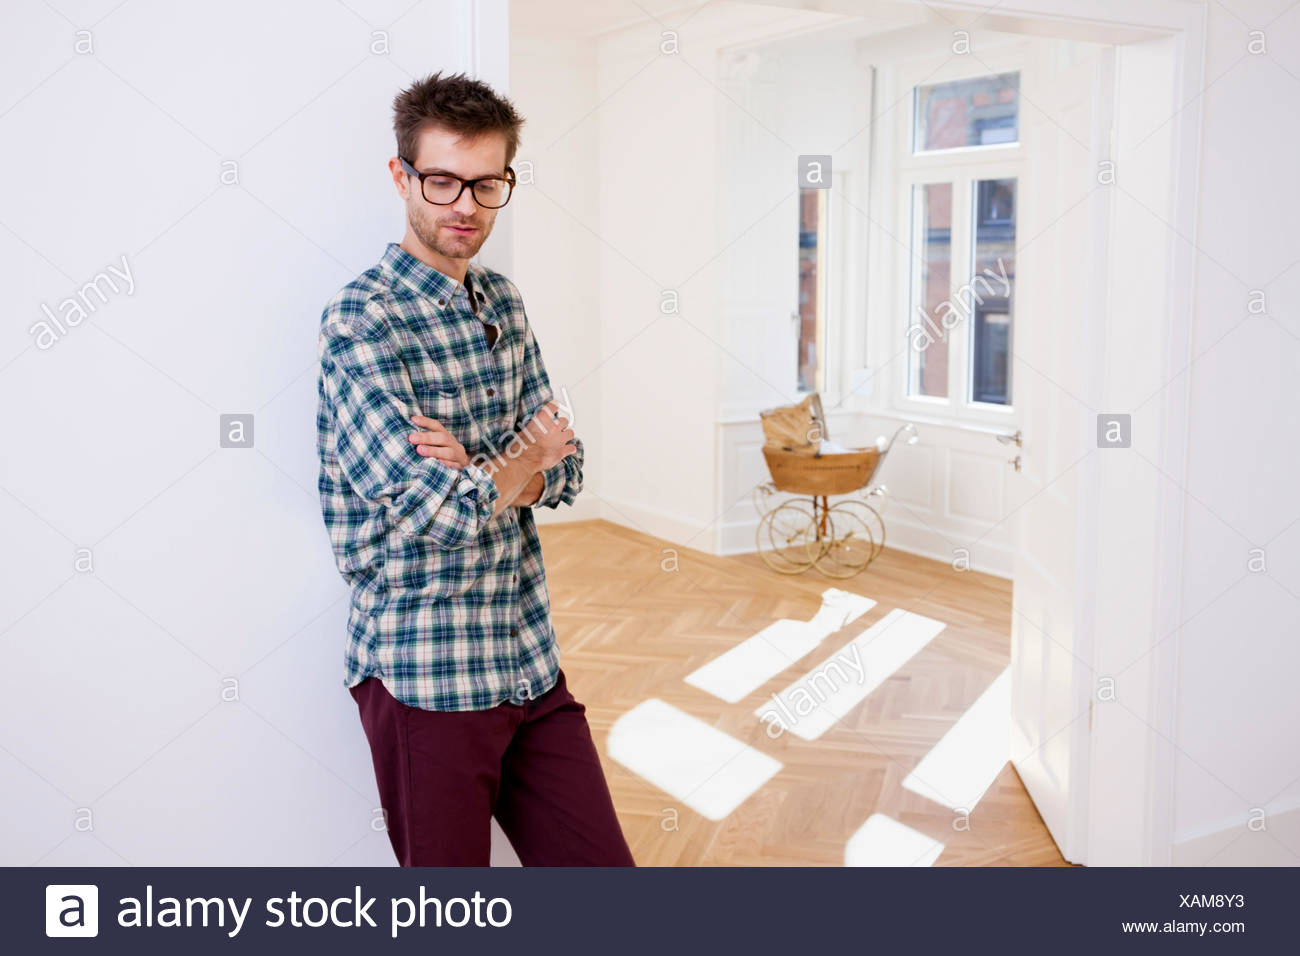 Thoughtful young man standing in new home with pram in background - Stock Image